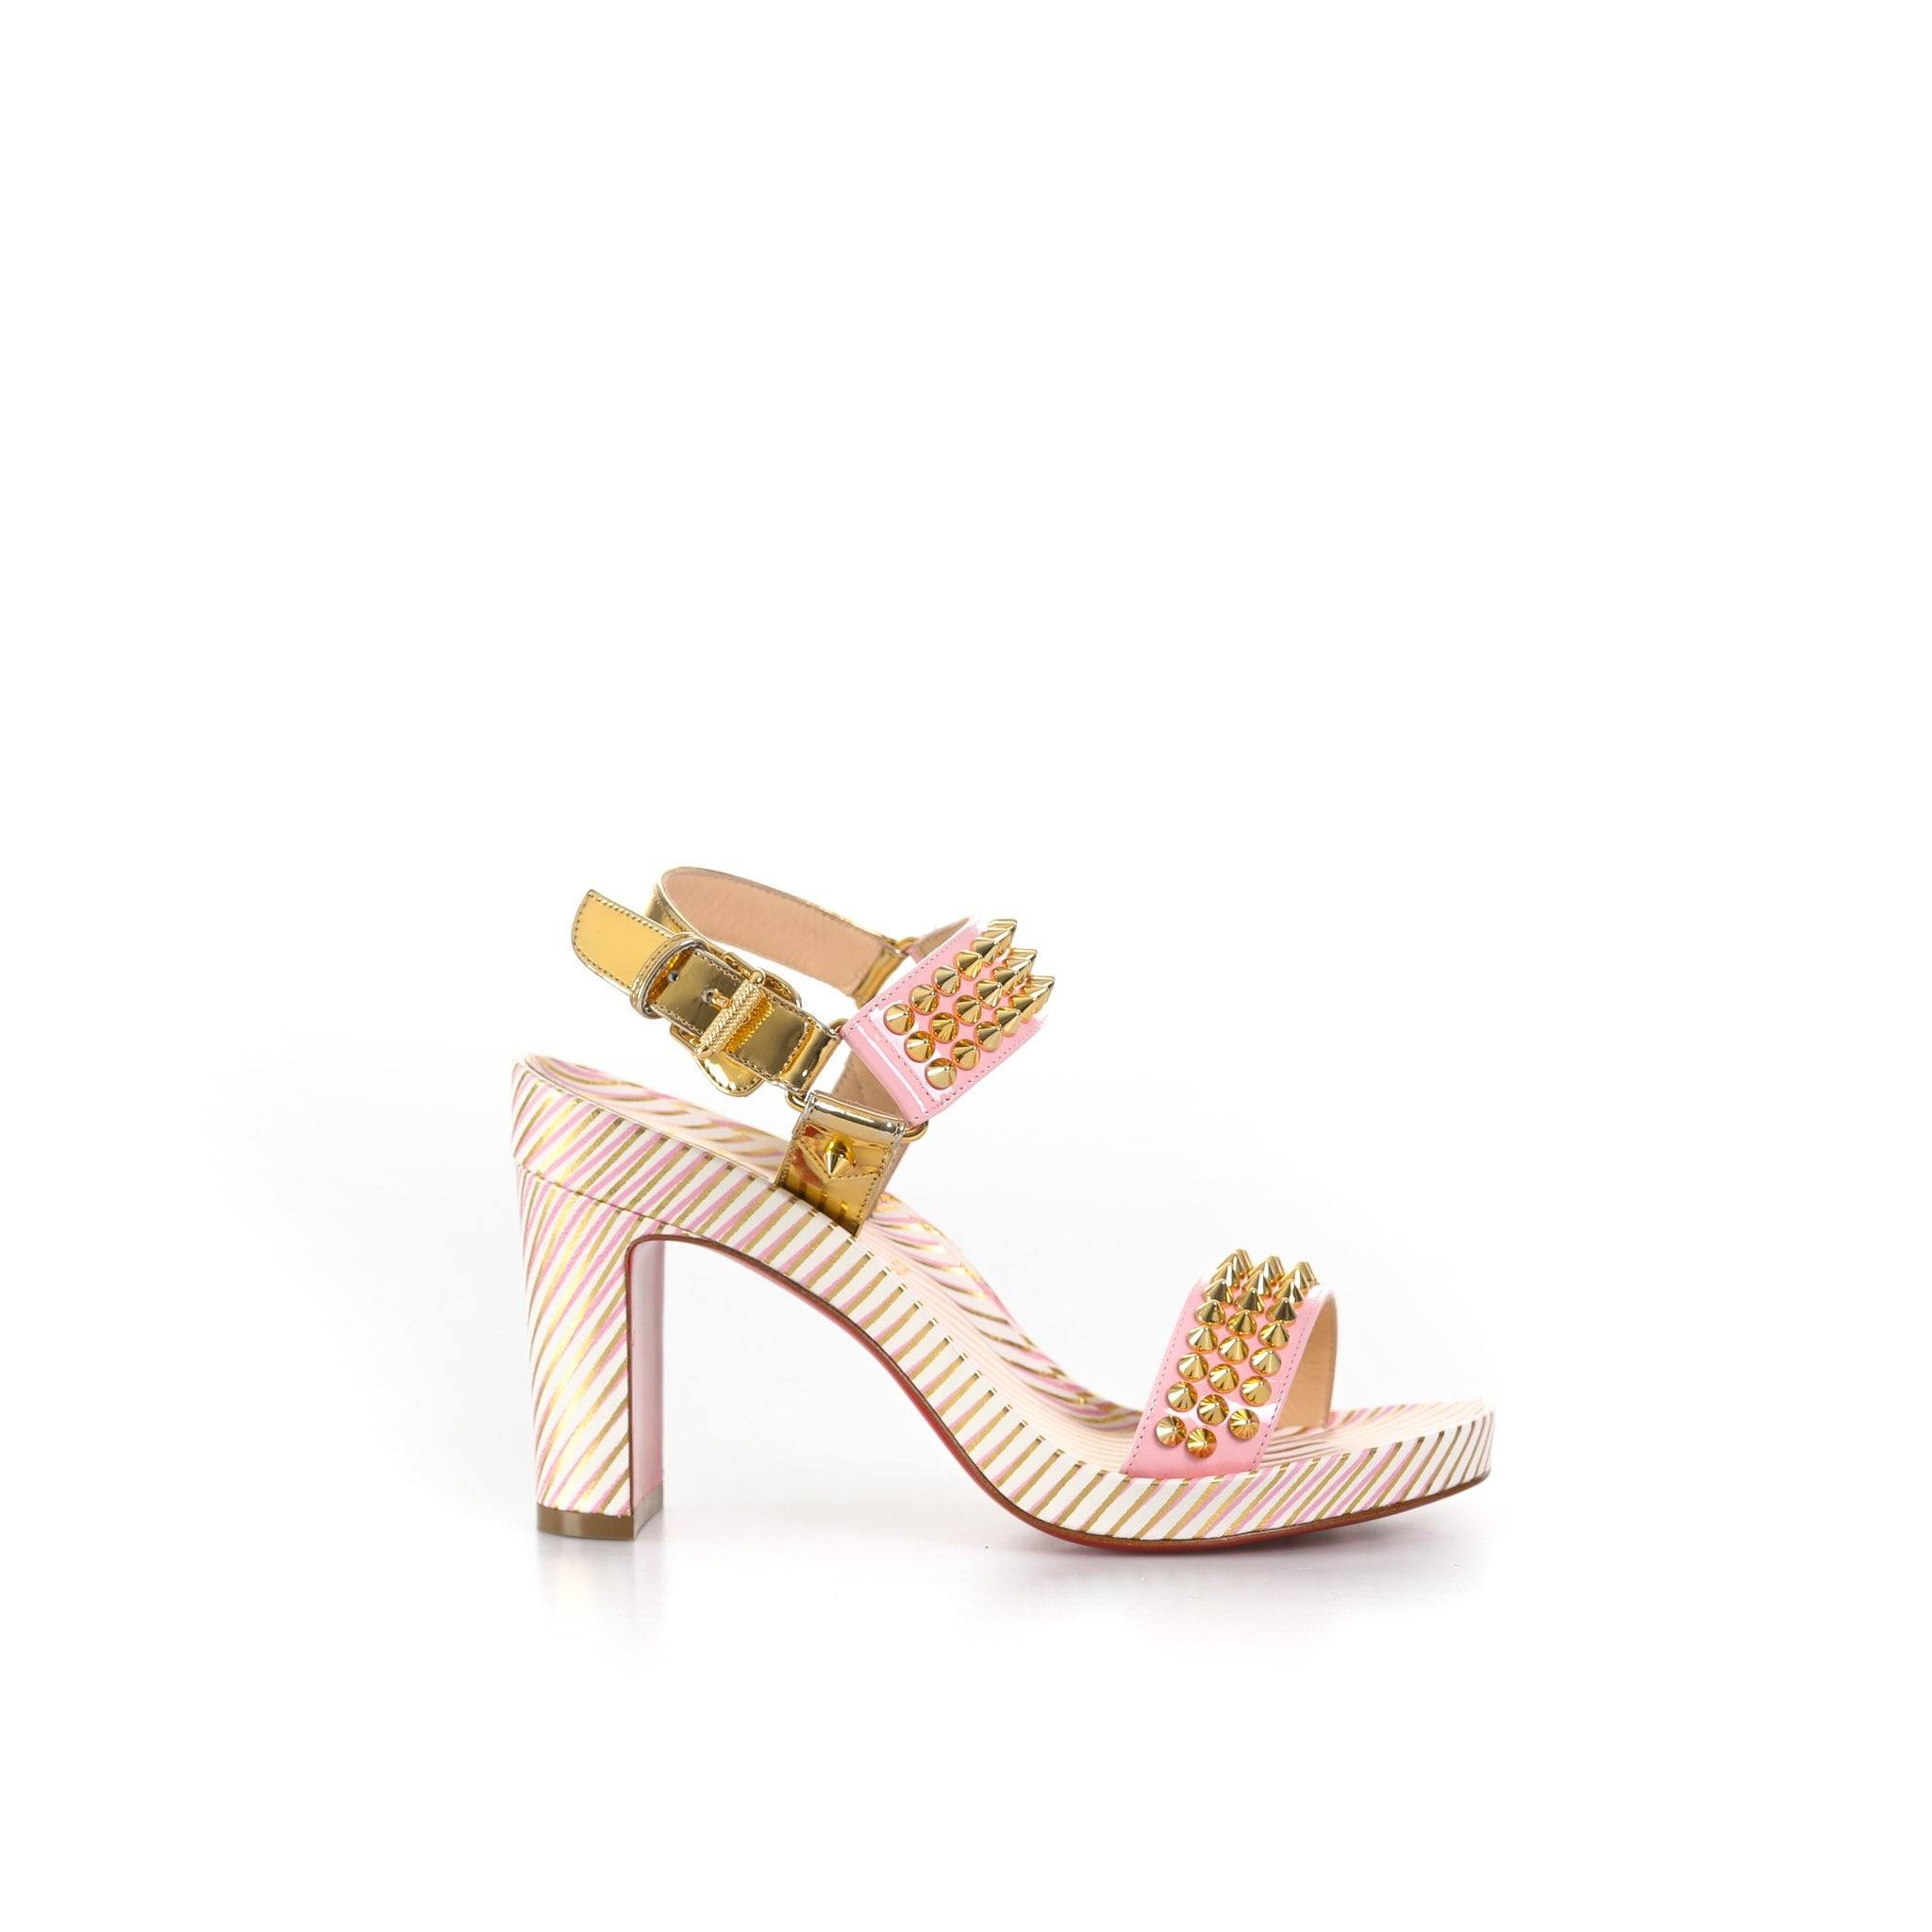 Spikes Leather Sandals-CHRISTIAN LOUBOUTIN-SHOPATVOI.COM - Luxury Fashion Designer